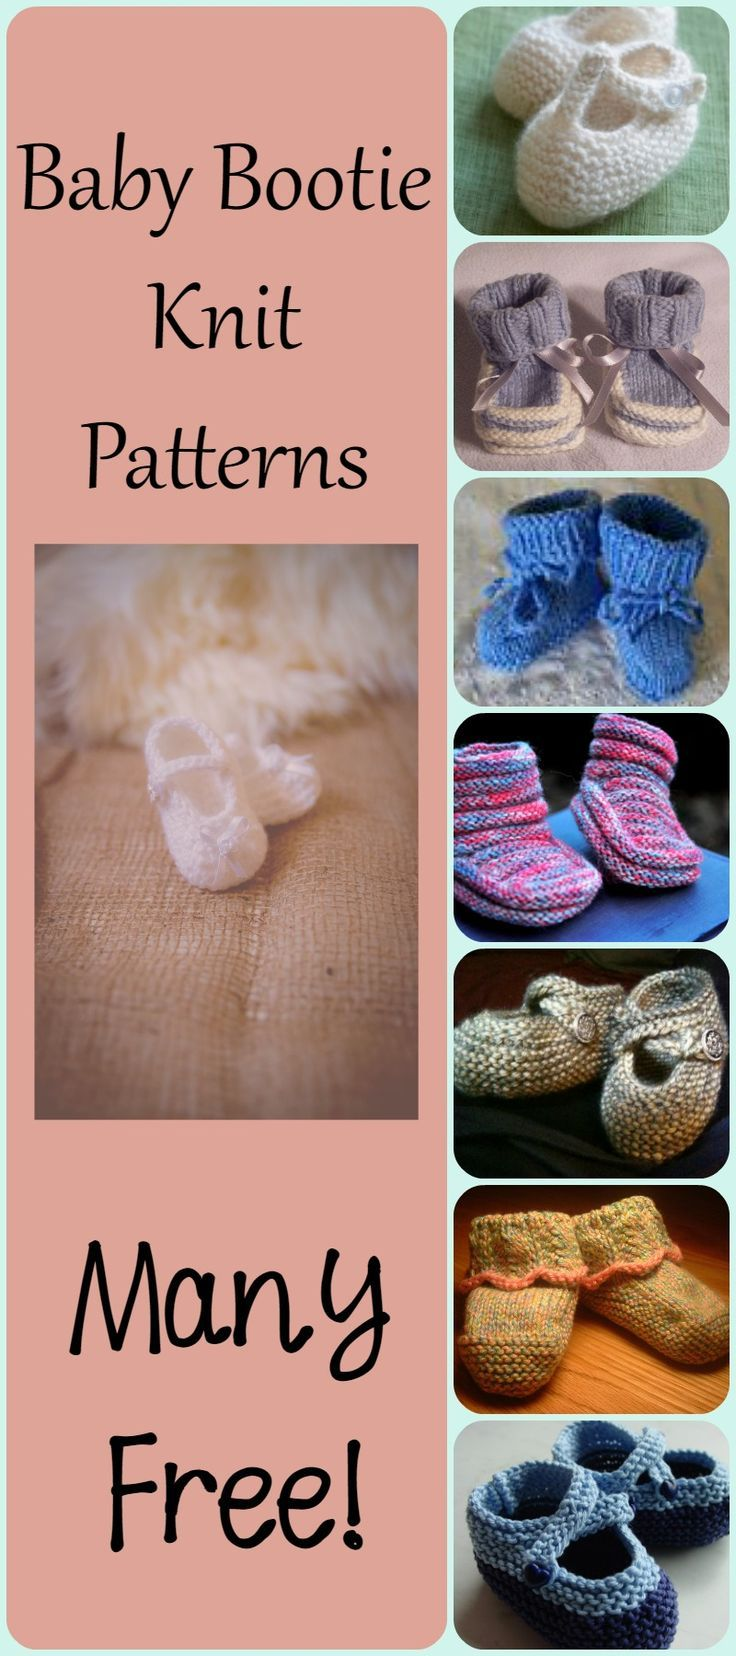 Baby Bootie Knit Patterns - Quick, Cute, Great New Mom Gift Ideas ...